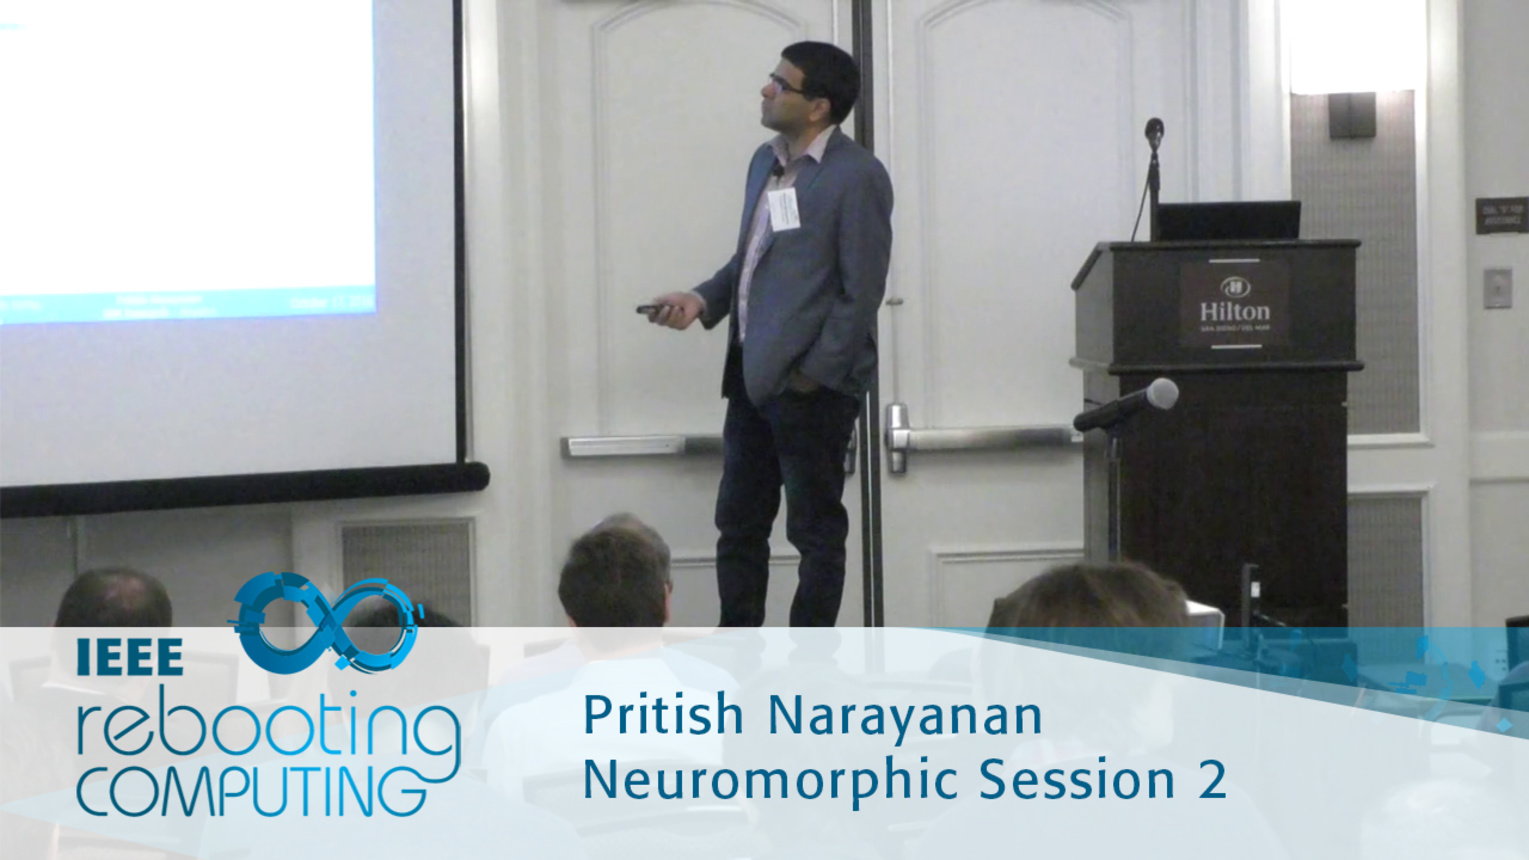 Accelerating Machine Learning with Non-Volatile Memory: Exploring device and circuit tradeoffs - Pritish Narayanan: 2016 International Conference on Rebooting Computing